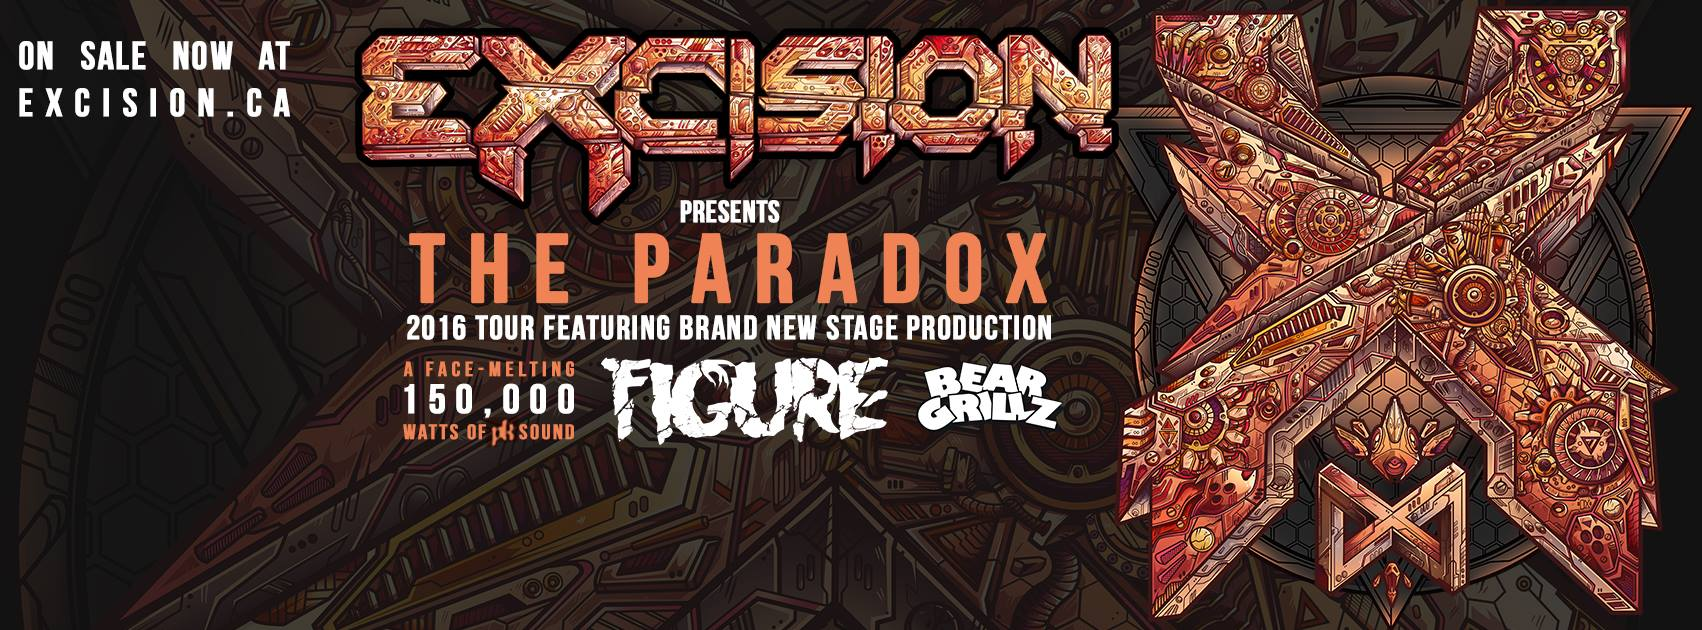 excision 2016